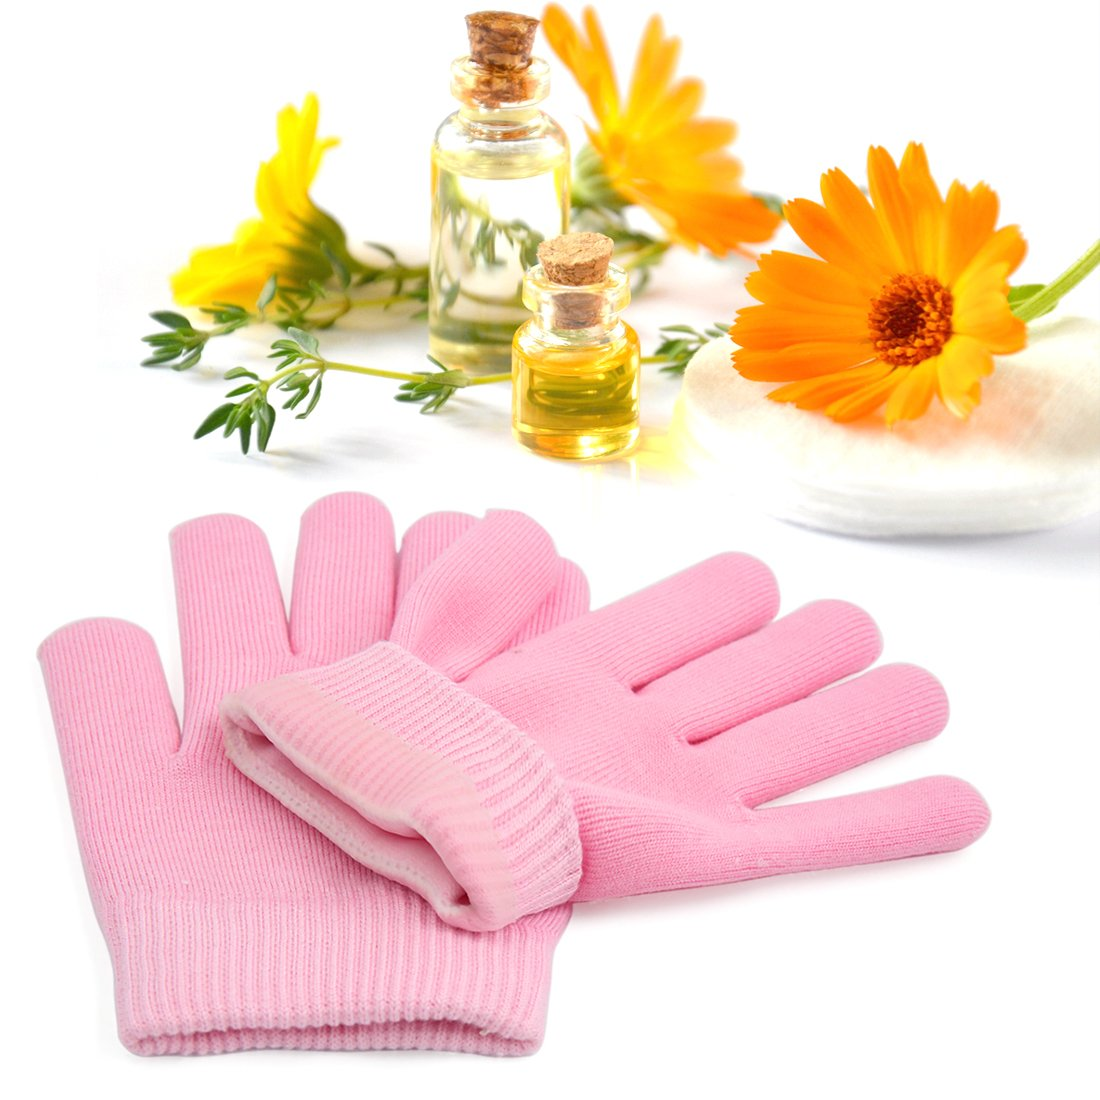 uxcell Gel Gloves Soft Moisturizing Sleeves Cover Dry Cracked Hand Skin Care Exfoliate Spa Treatment Baby Pink 1 Pair US-SA-AJD-155279